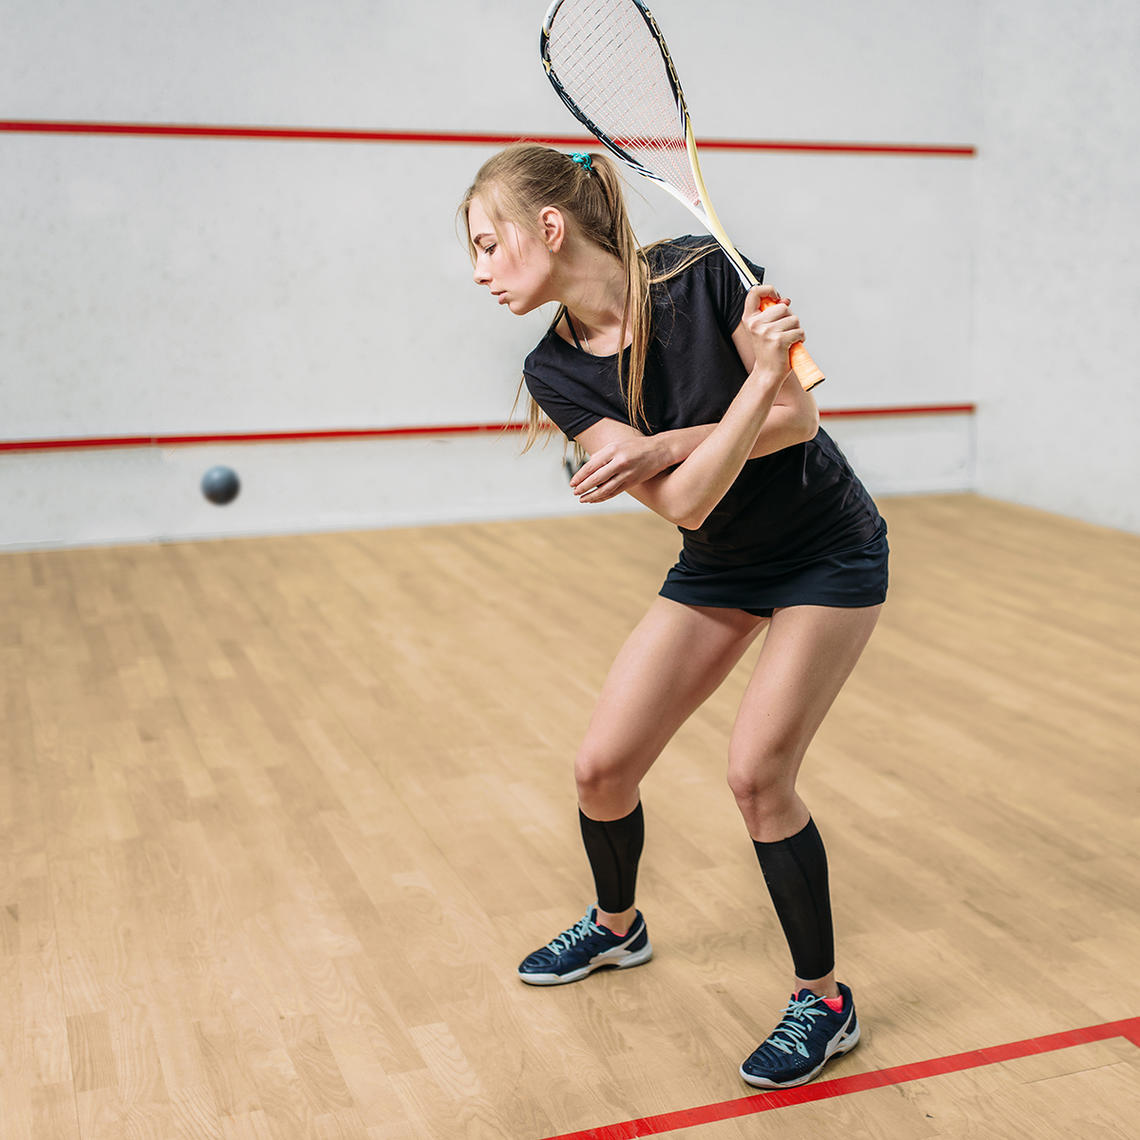 Squash player in a court